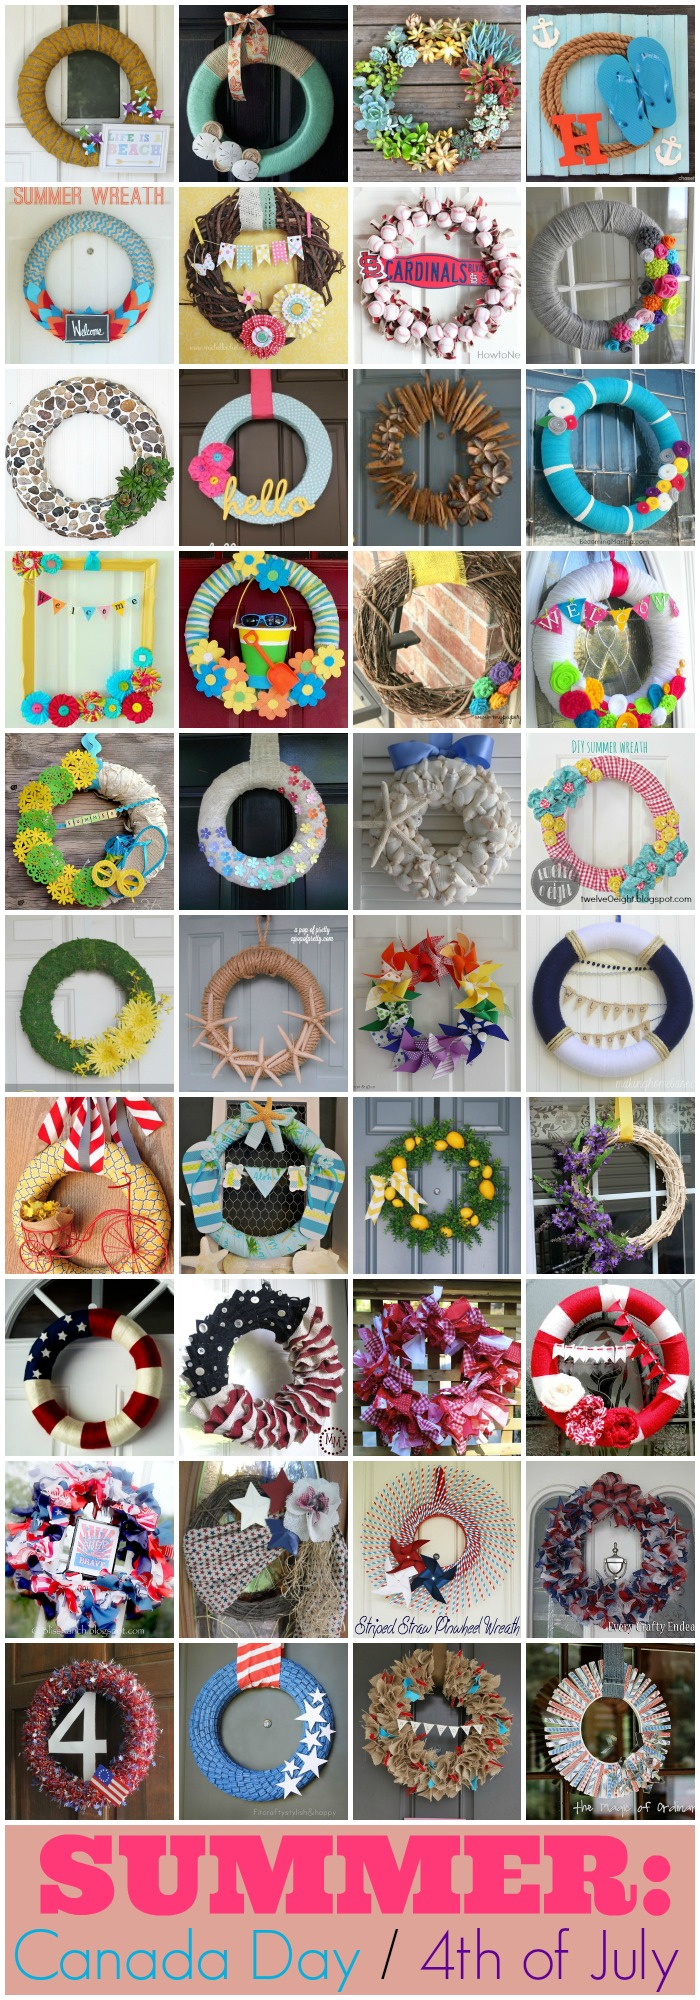 160 Best Wreath Tutorials for every season and holiday - from The Simply Crafted Life #wreath #tutorial #fall #winter #spring #summer